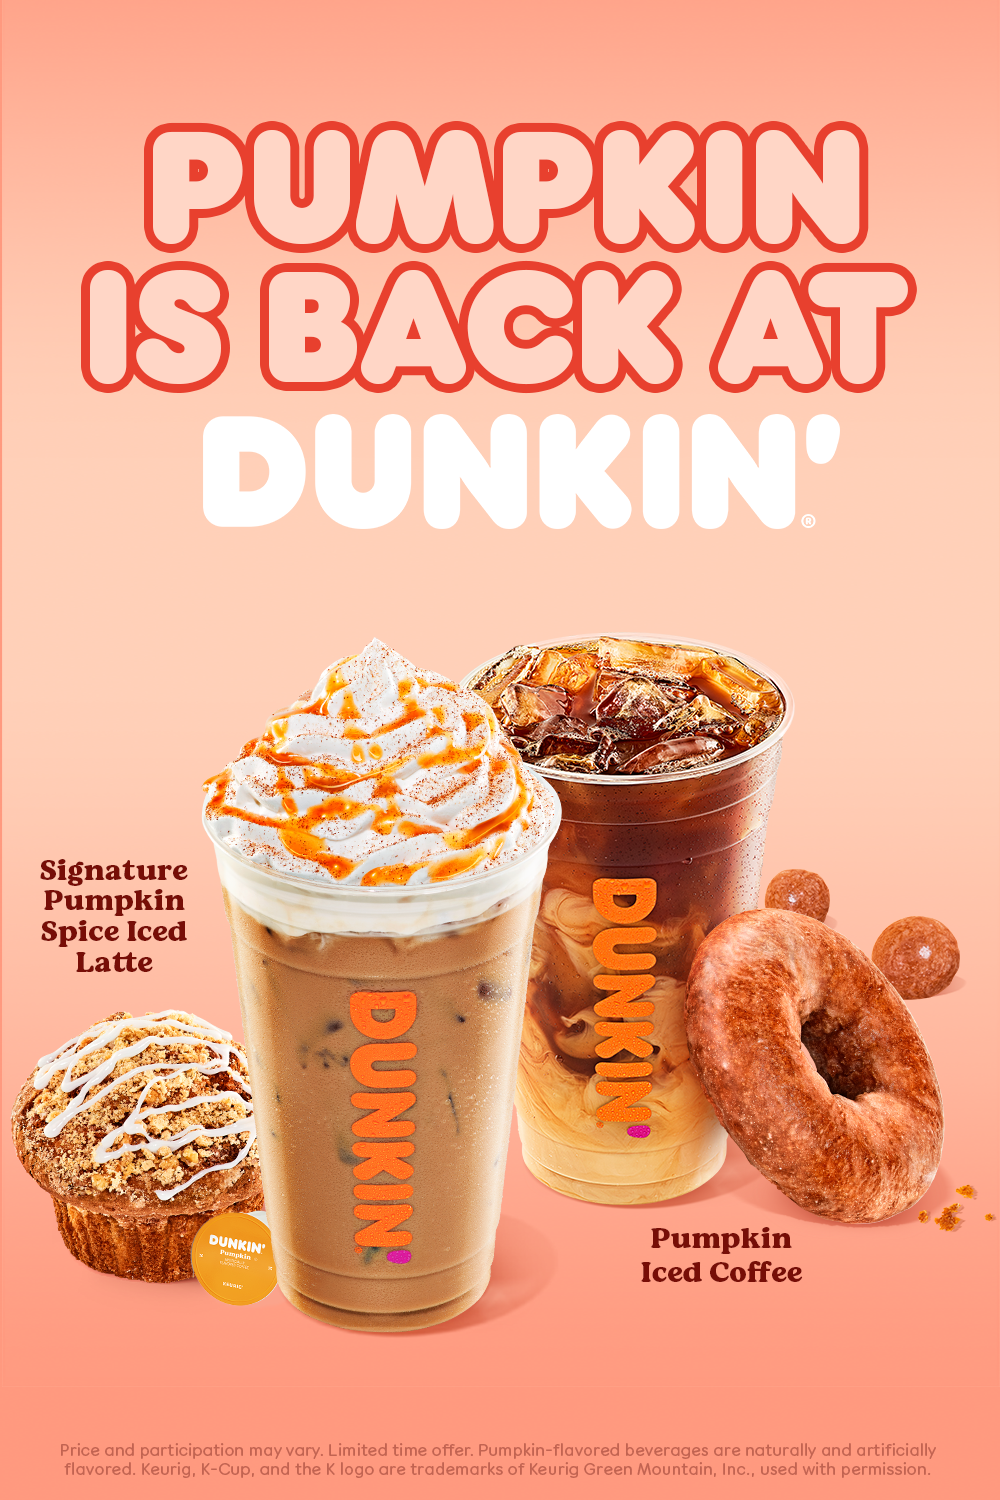 Pumpkin is back at Dunkin' in 2020 Fruit smoothie